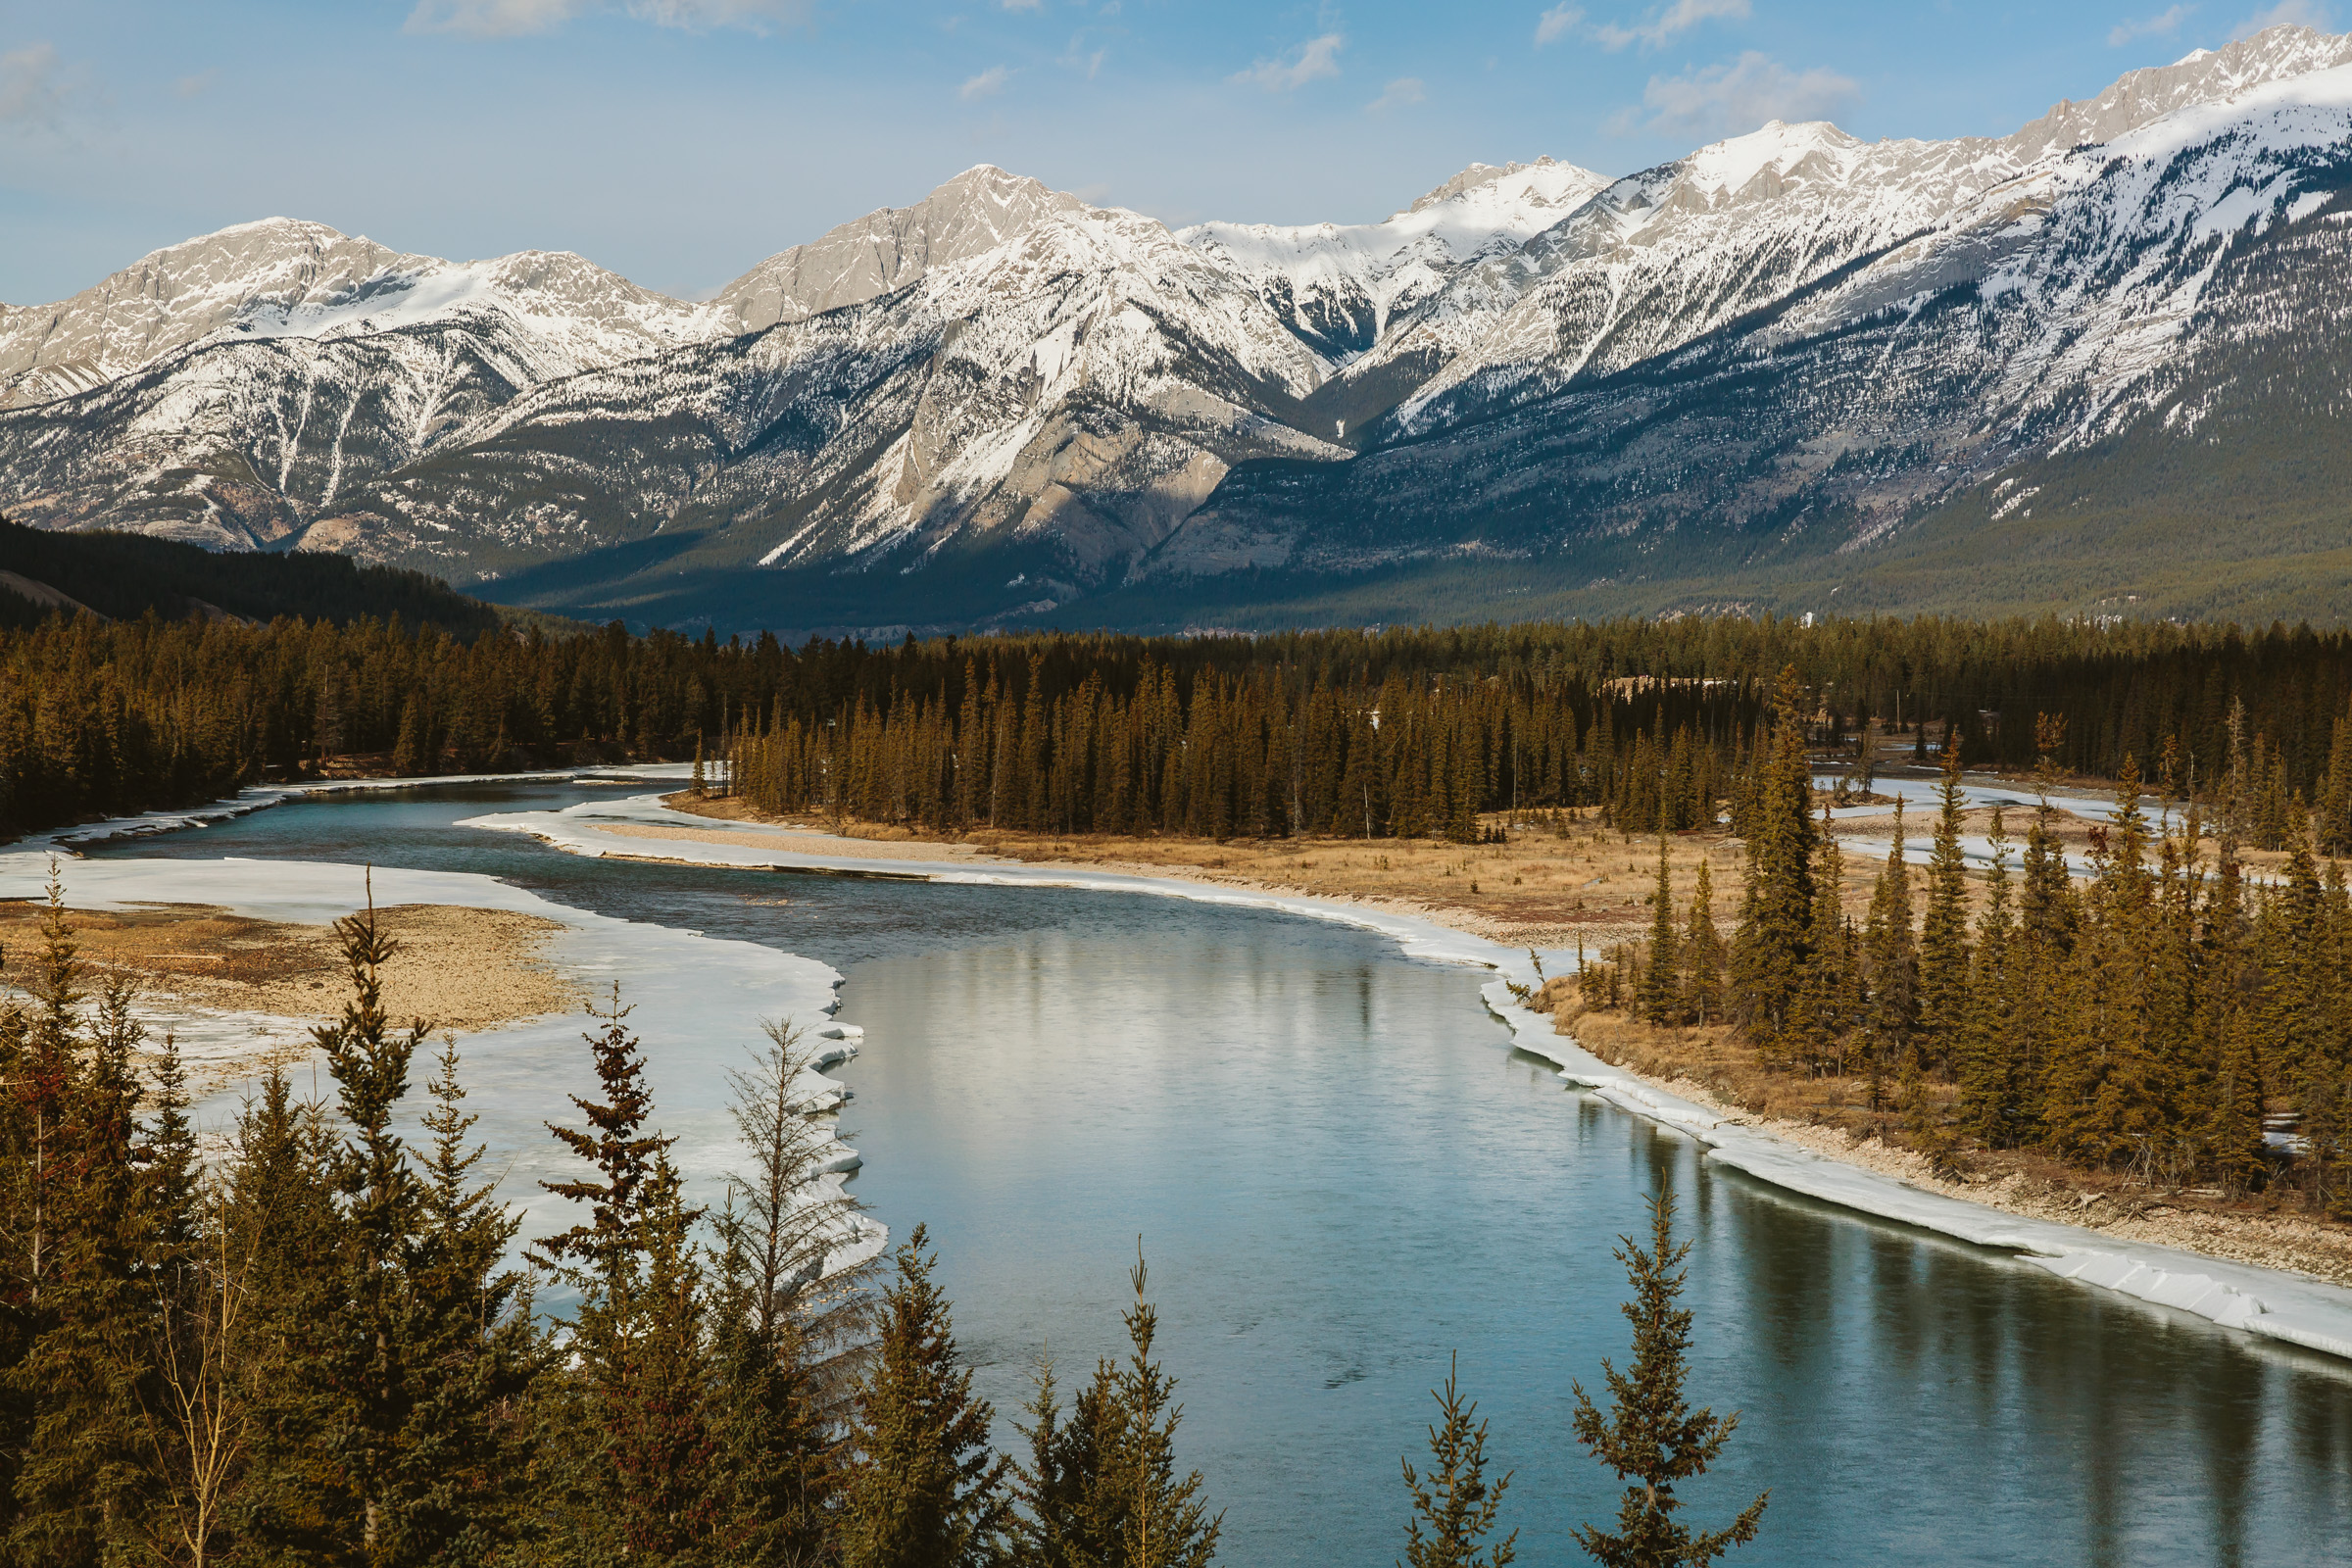 z-canada-alberta-lifestyle-photography-mikeseehagel-29